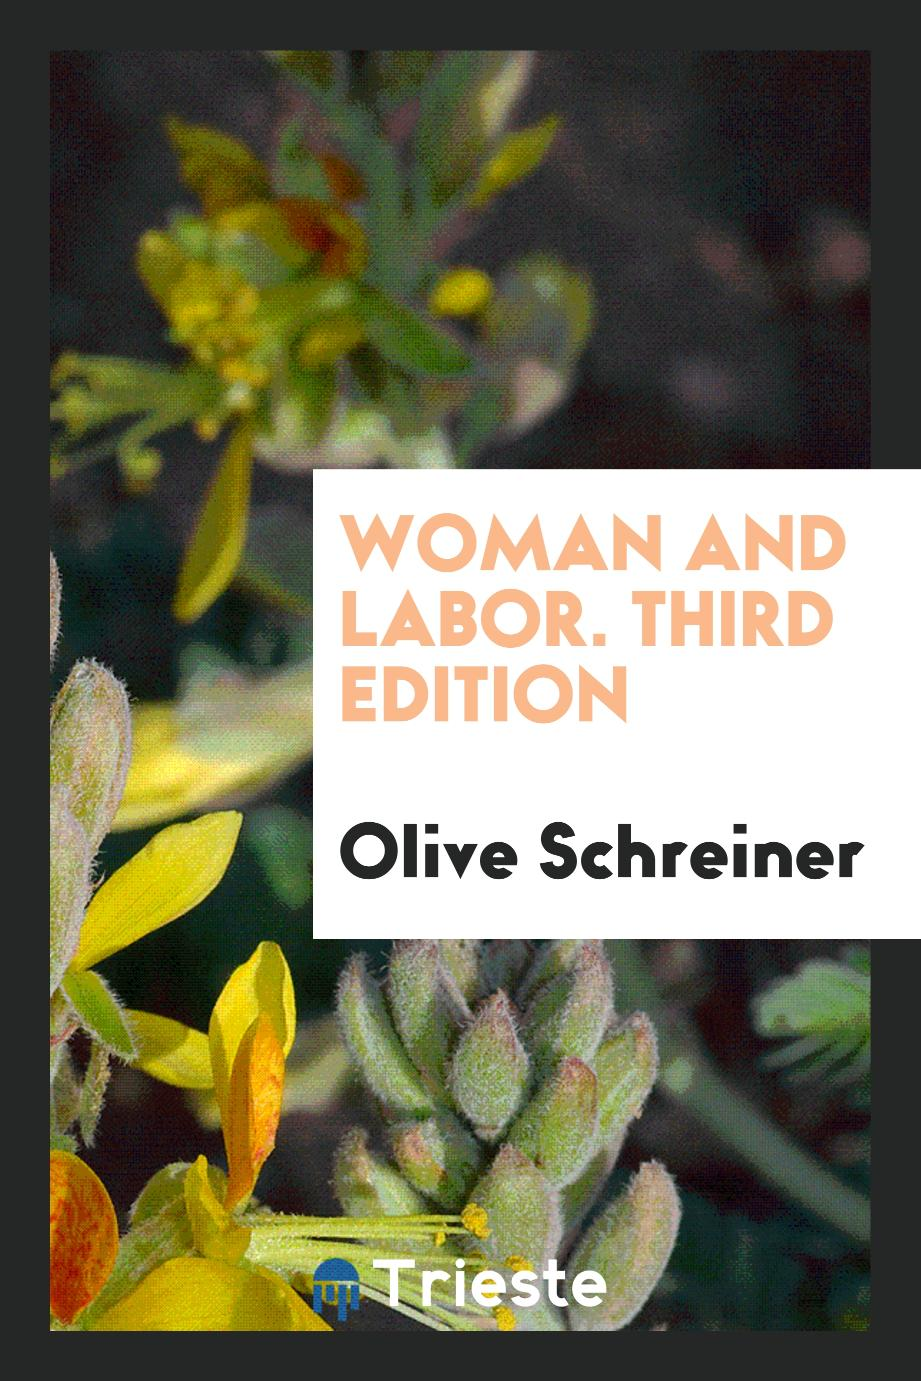 Woman and Labor. Third Edition